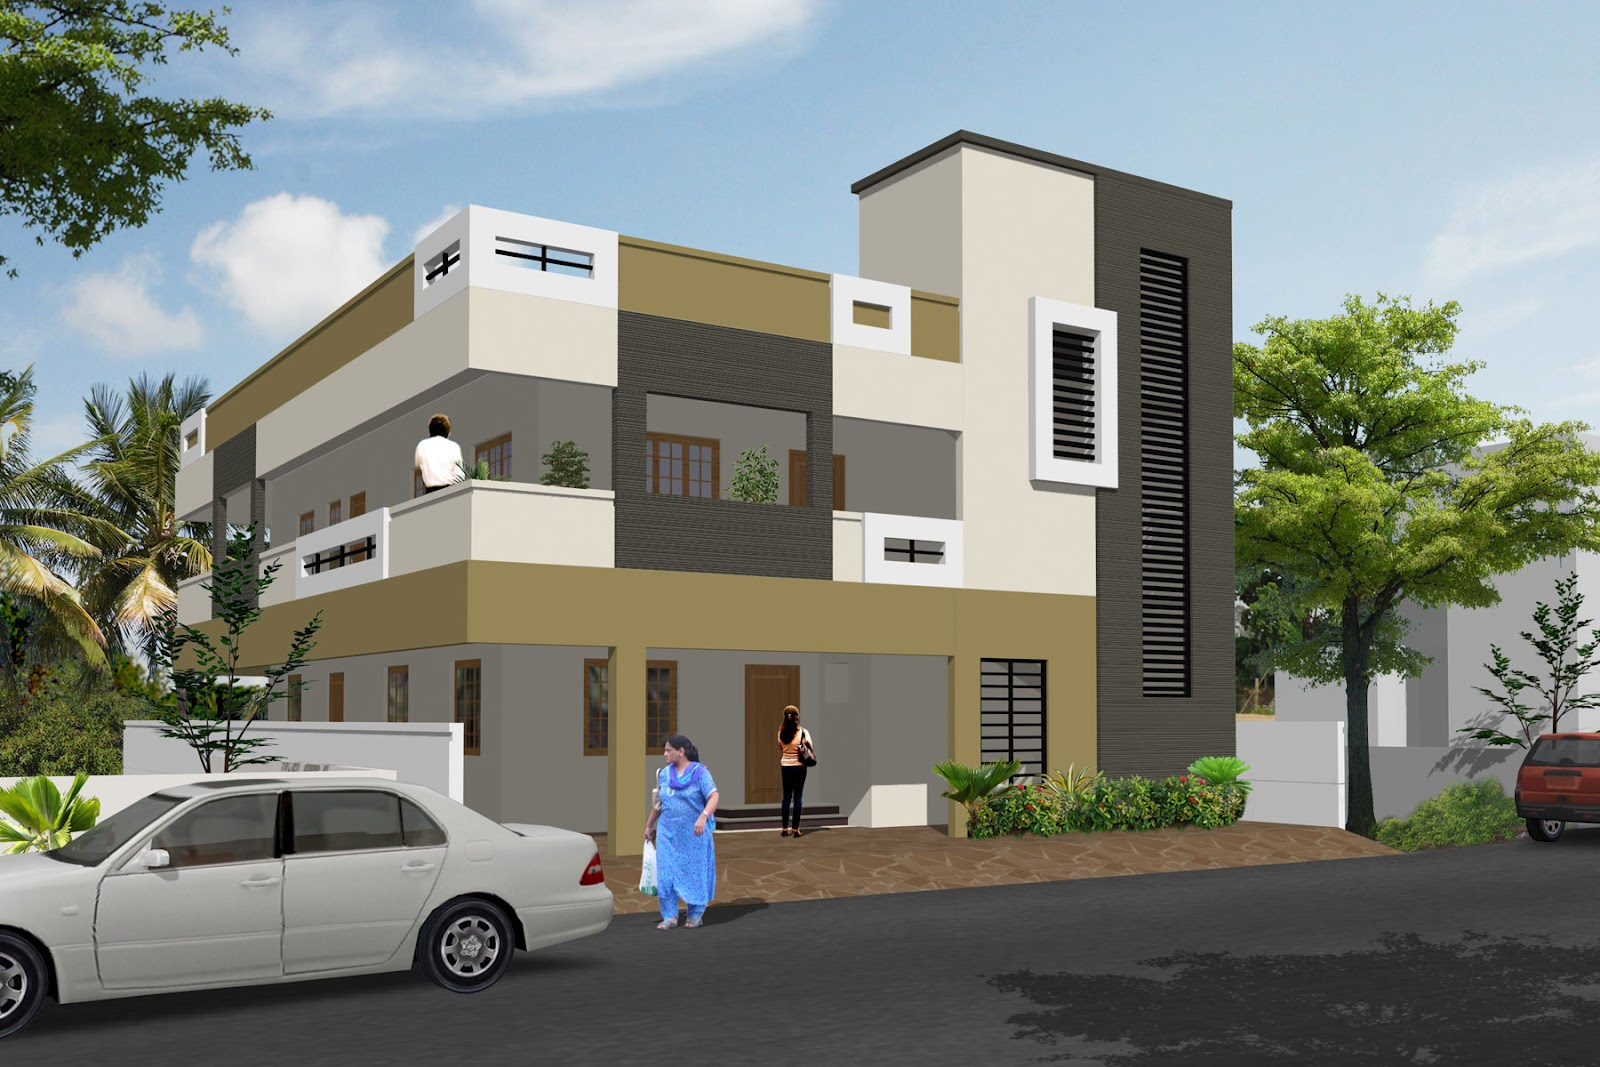 Residential Design: SKY STRUCTURES: RESIDENTIAL BUILDINGS